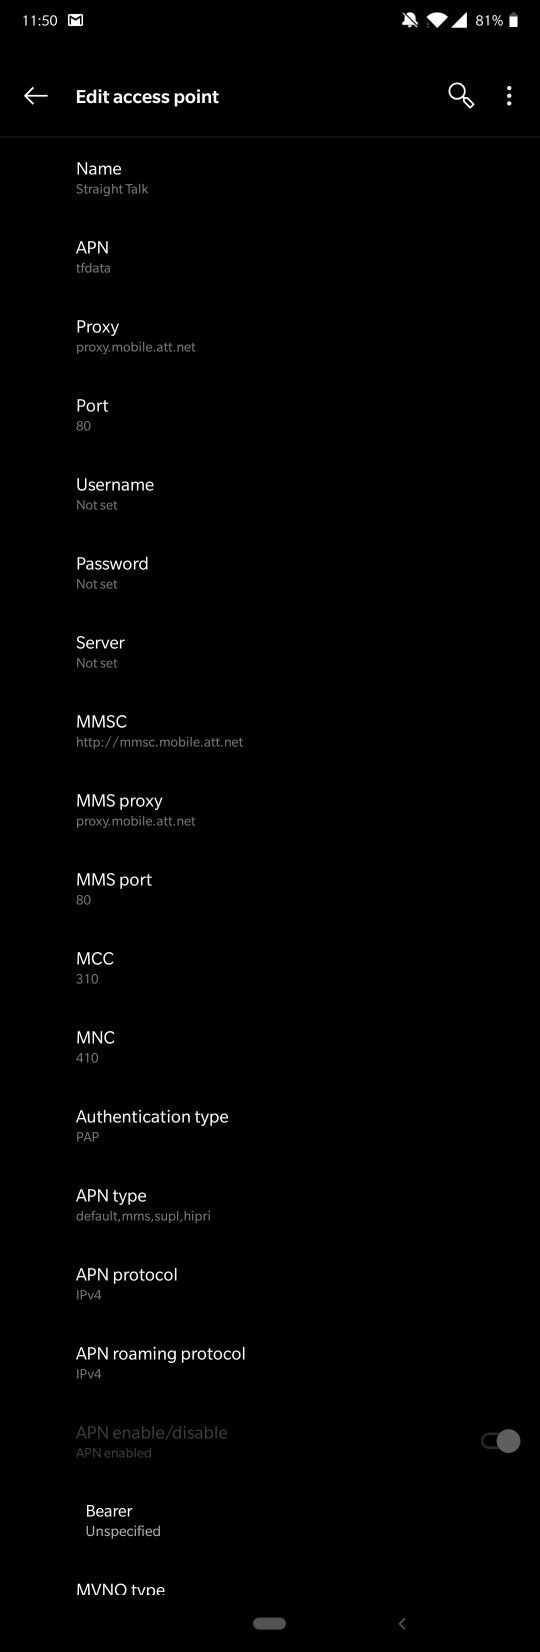 pie update mobile data and mms not working - OnePlus Community